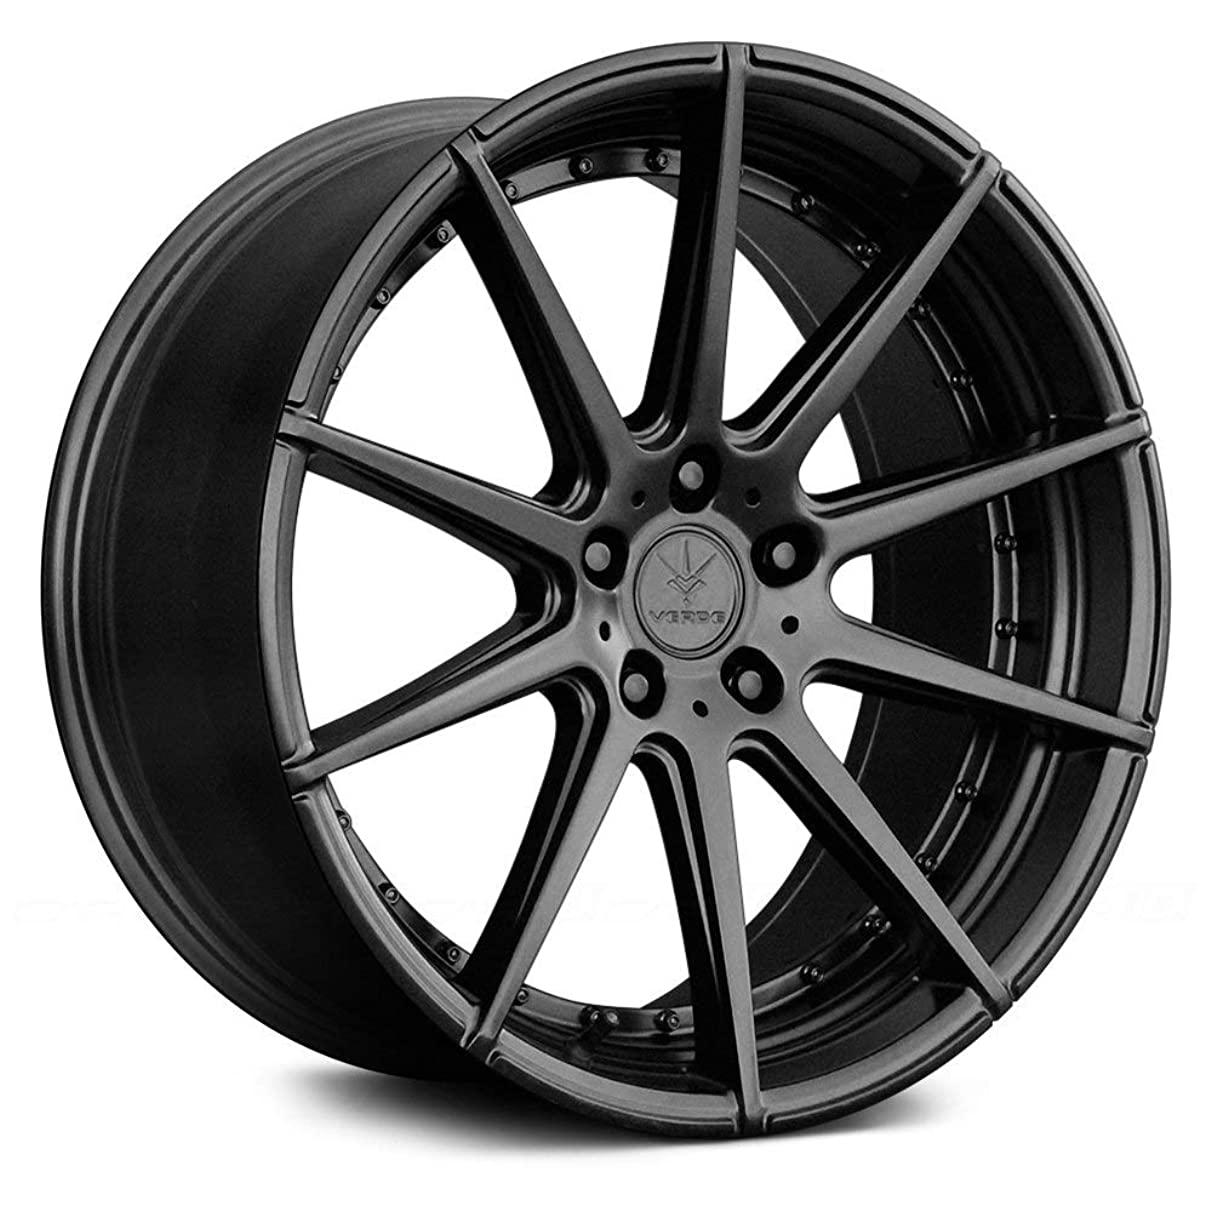 Verde Custom Wheels Insignia Satin Black Wheel with Painted Finish (20 x 9. inches /5 x 120 mm, 20 mm Offset)